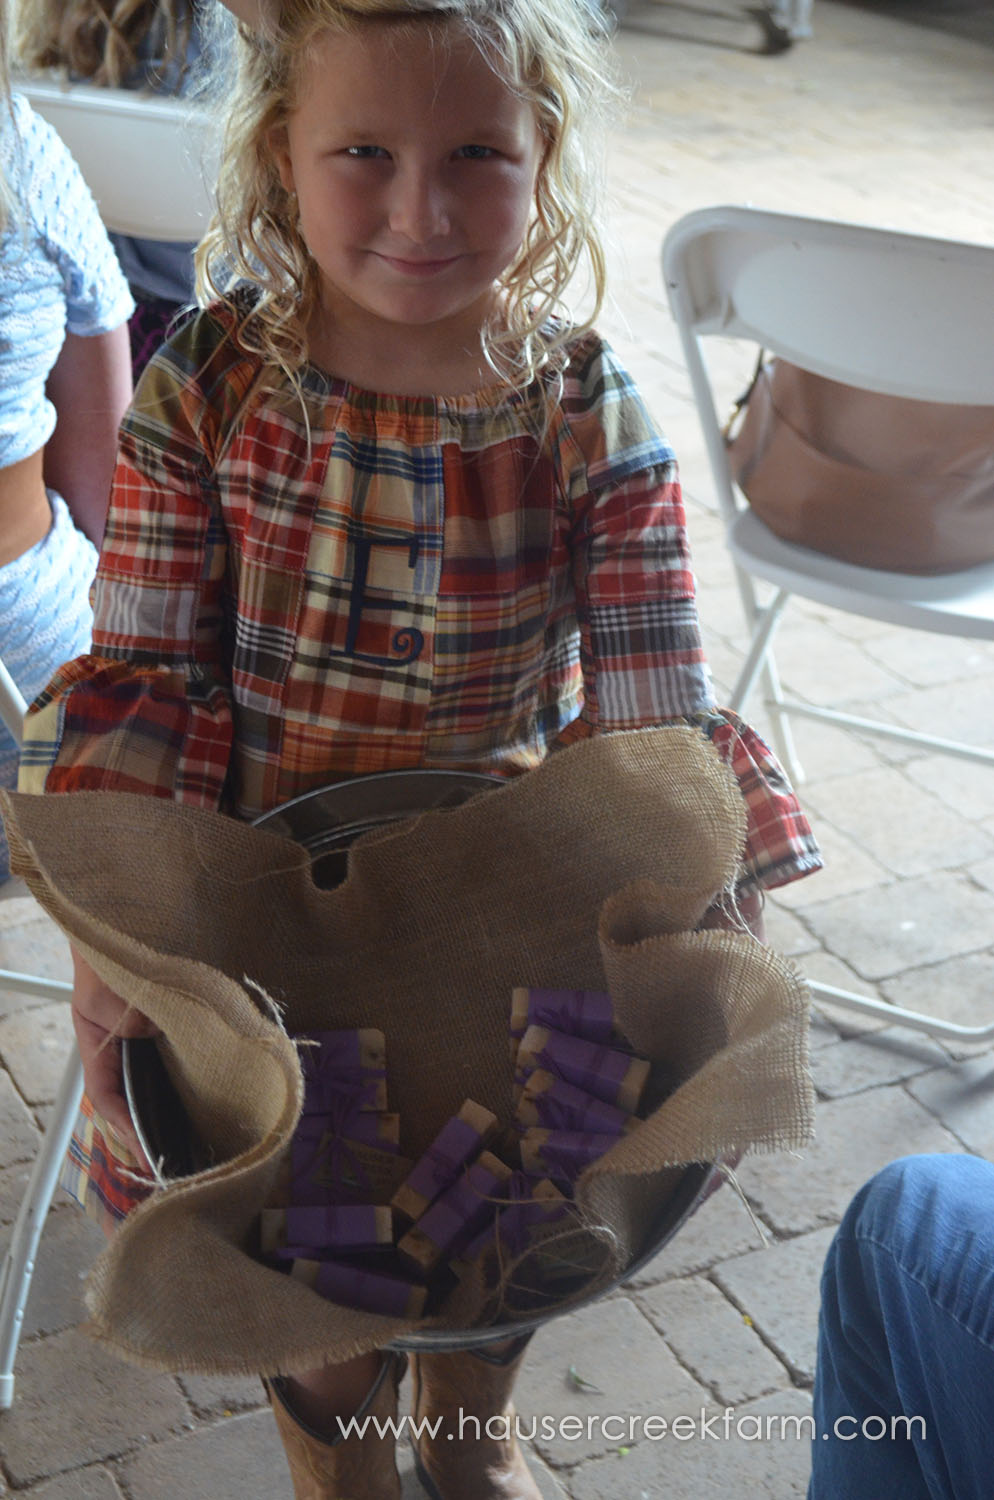 little-blonde-girl-holding-bucket-of-lavender-soaps-at-hauser-creek-farm-056.jpg